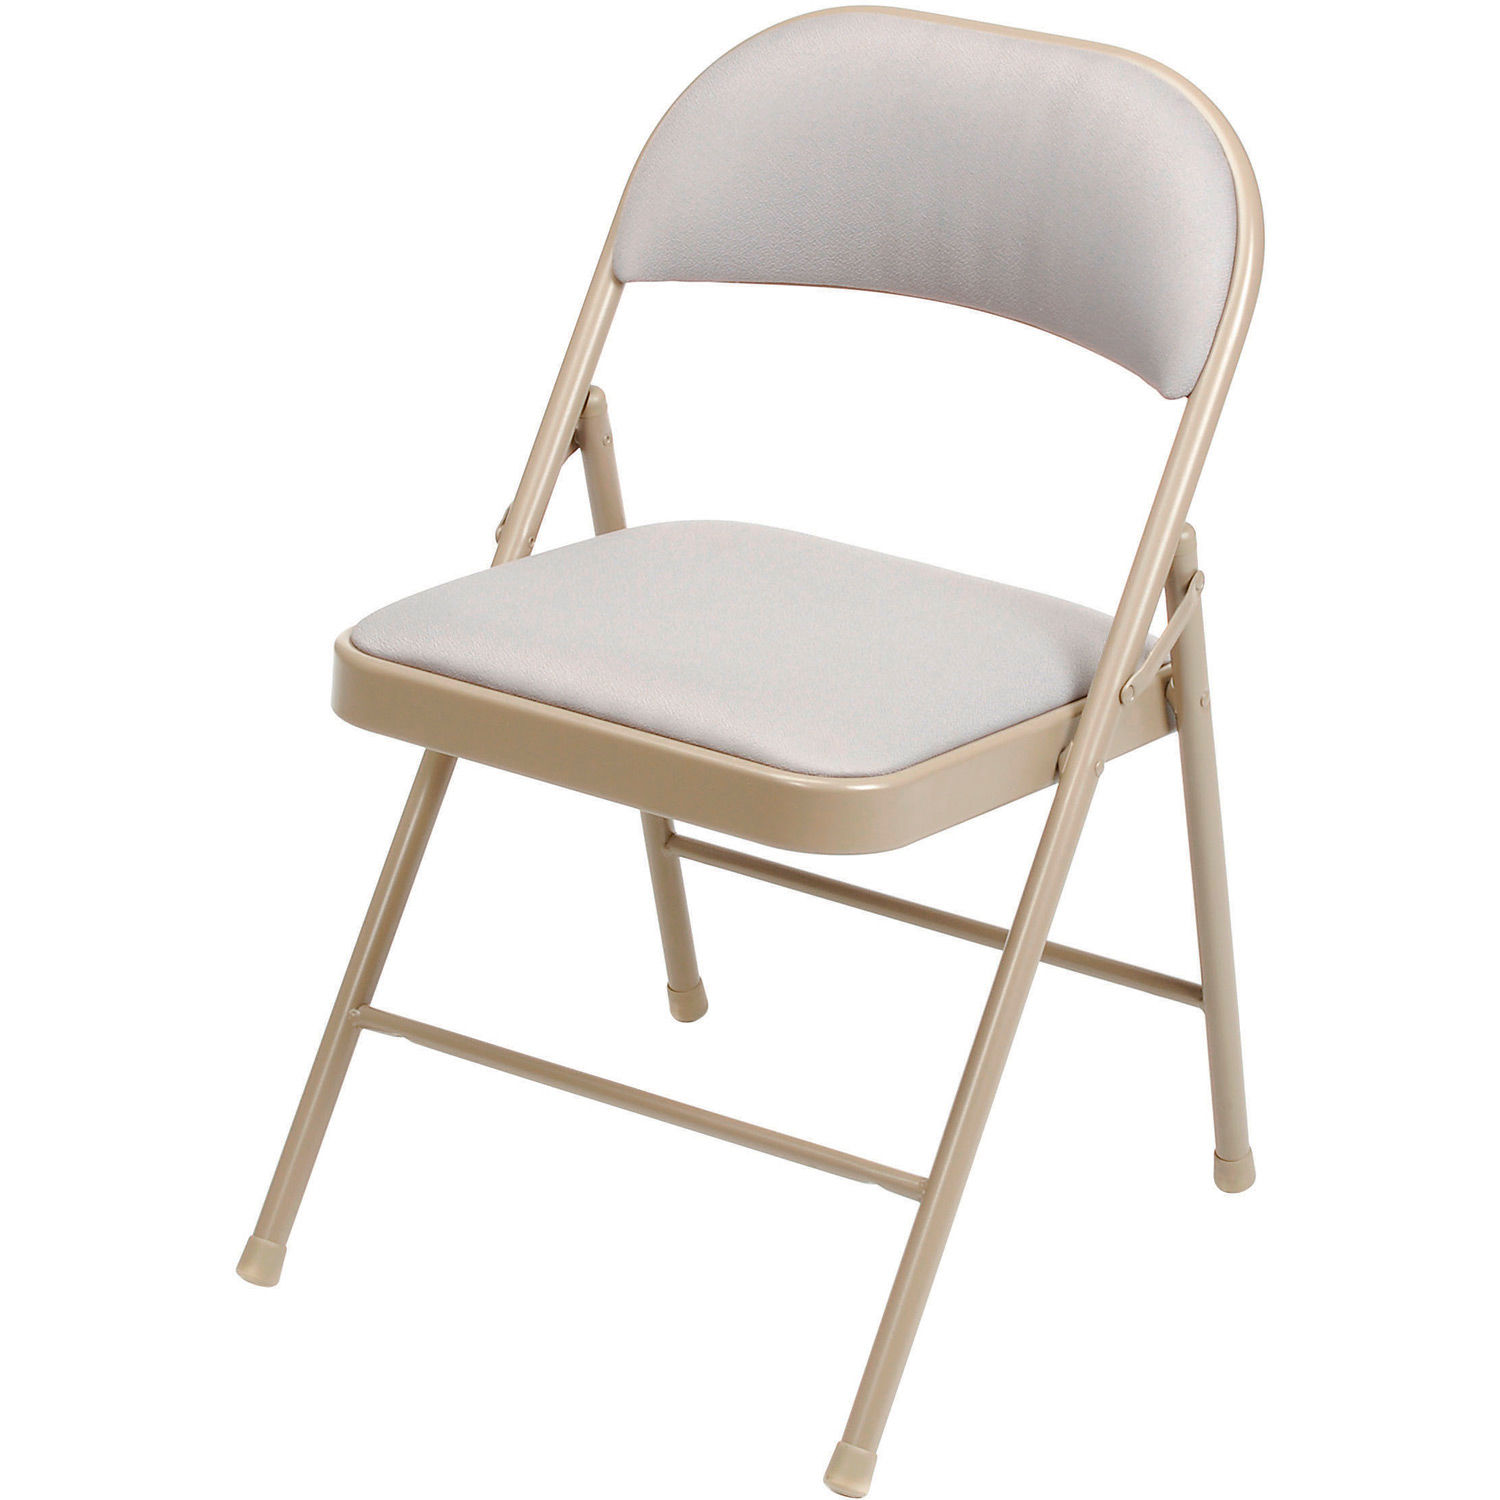 Magnificent Chairs Folding Chairs Interion174 Steel Folding Chair Theyellowbook Wood Chair Design Ideas Theyellowbookinfo